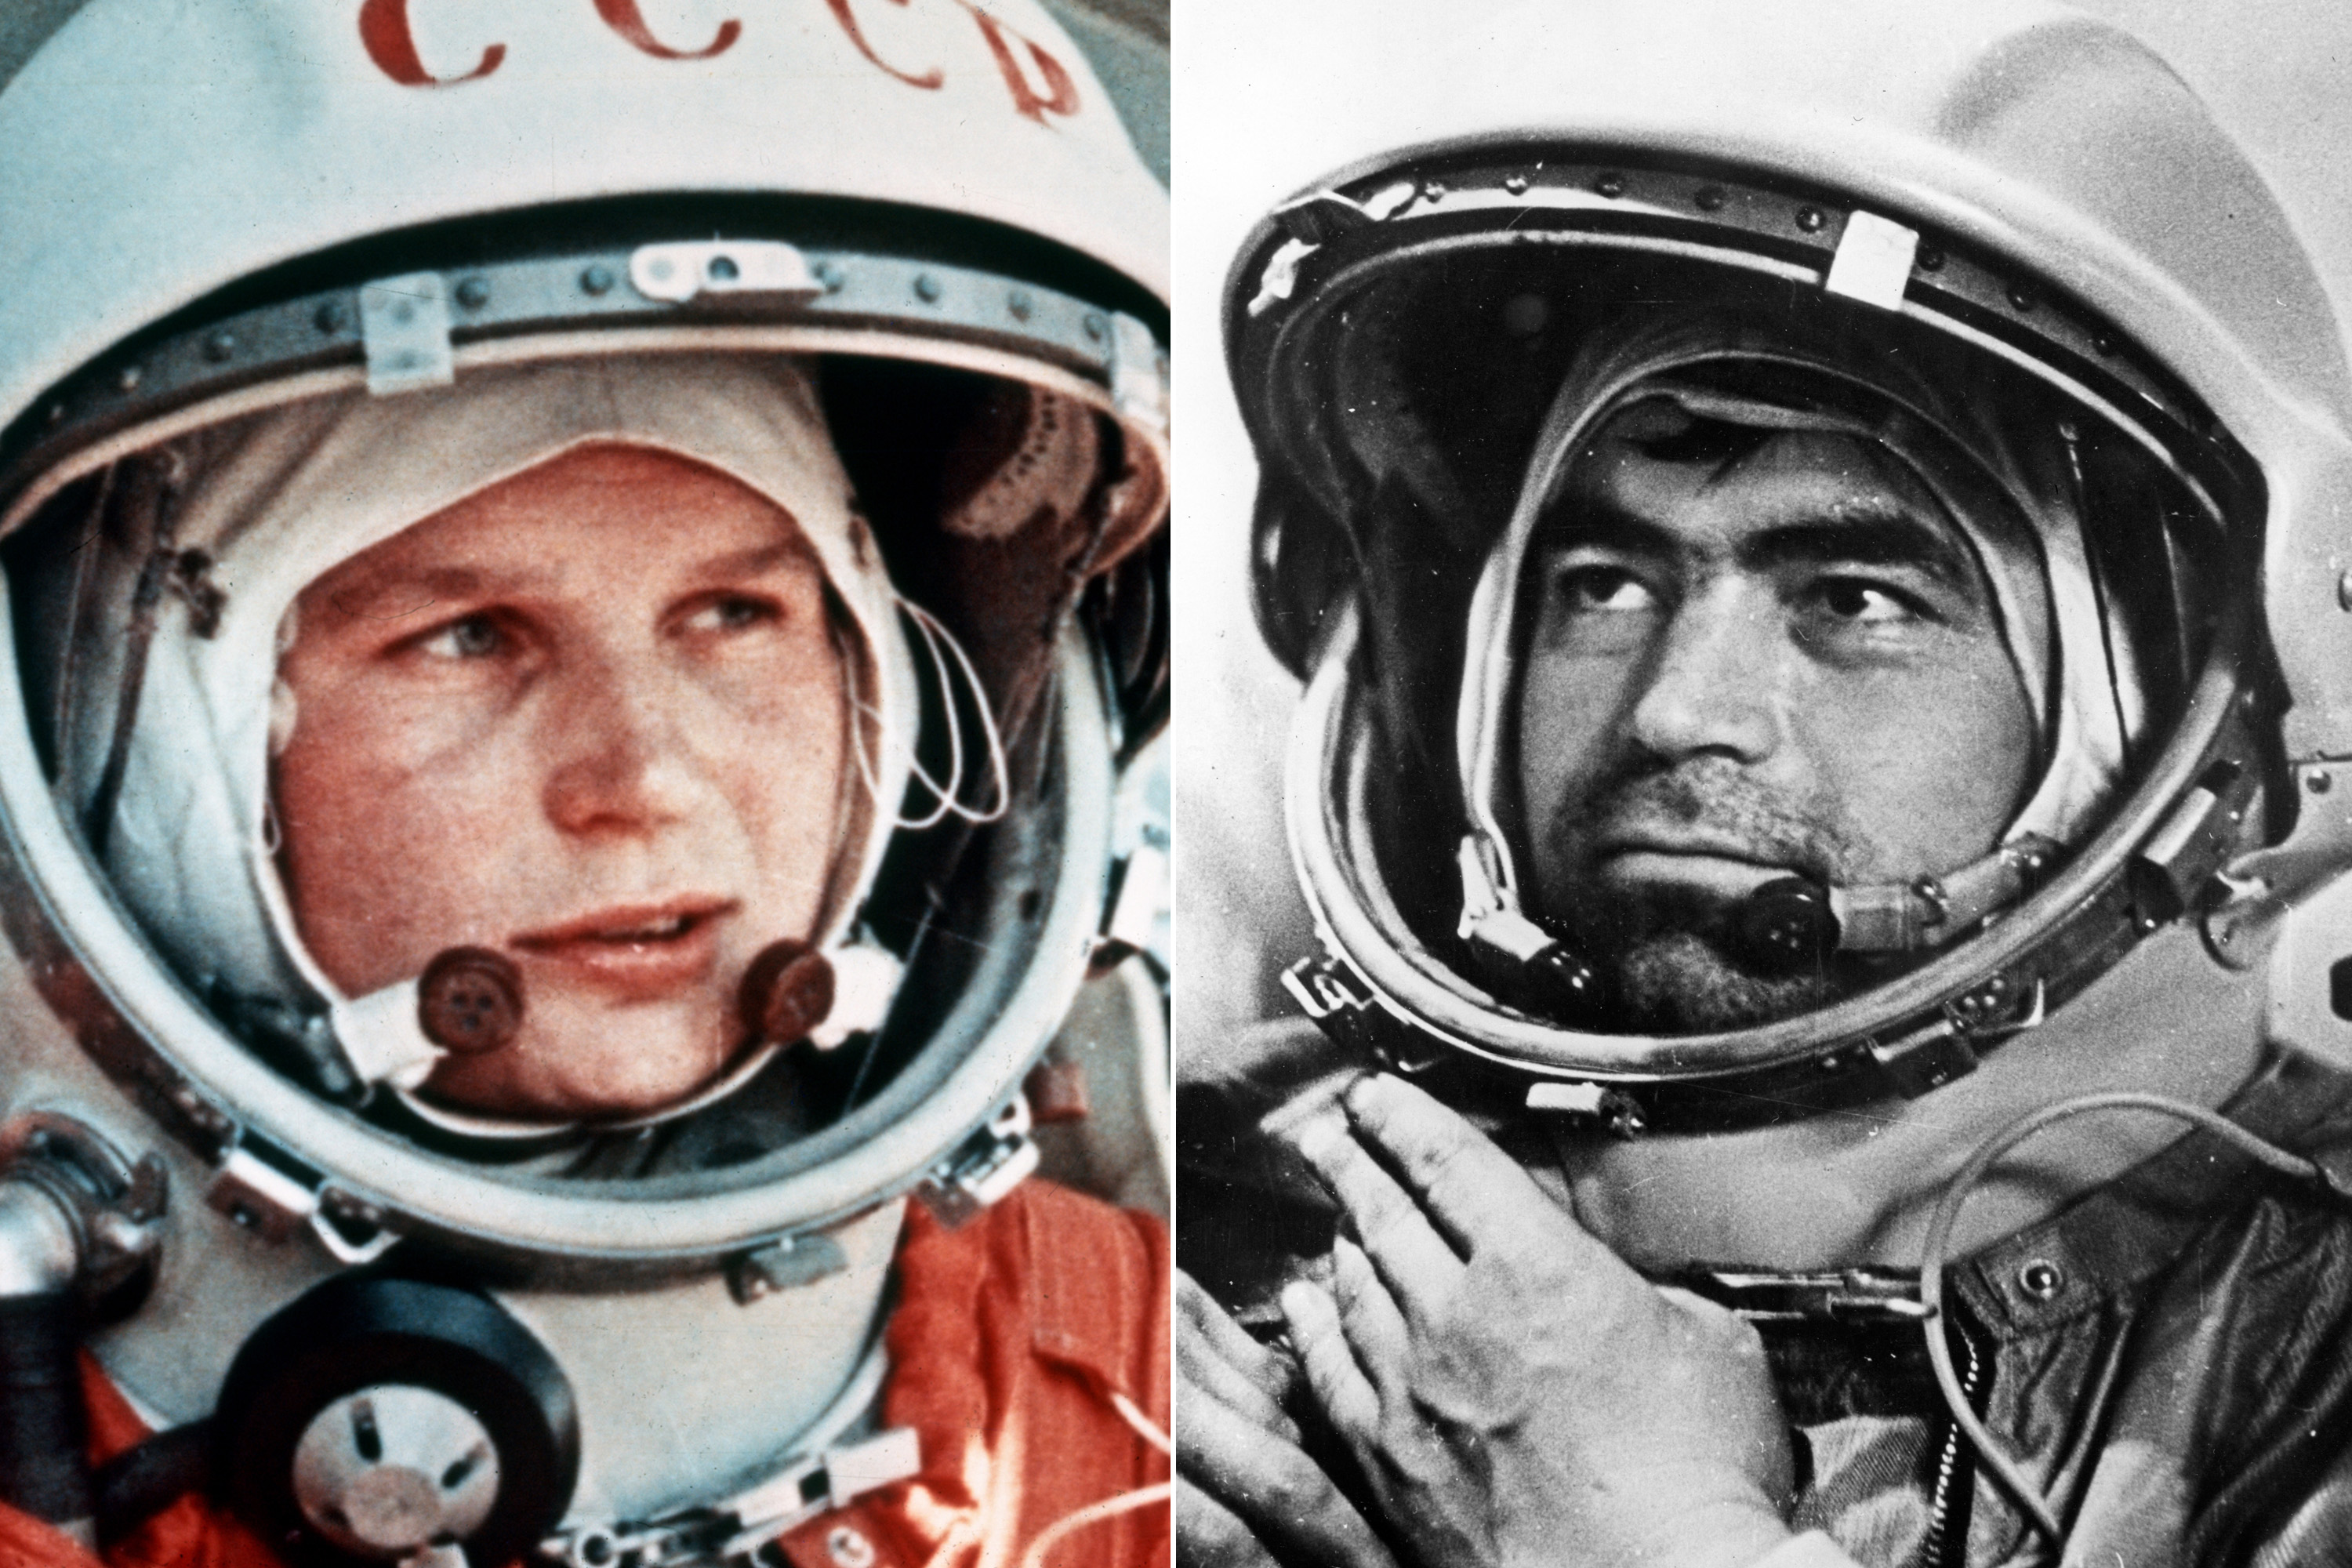 Soviet cosmonauts Valentina Tereshkova and Andriyan Nikolayev were married on Nov. 3, 1963.  Tereshkova was launched aboard Vostok 6 on June 16, 1963, becoming the first woman to fly in space.  Andrian Nikolayev flew on two missions during his career, Vostok 3 and Soyuz 9.  The pair had one daughter; they divorced in 1982.